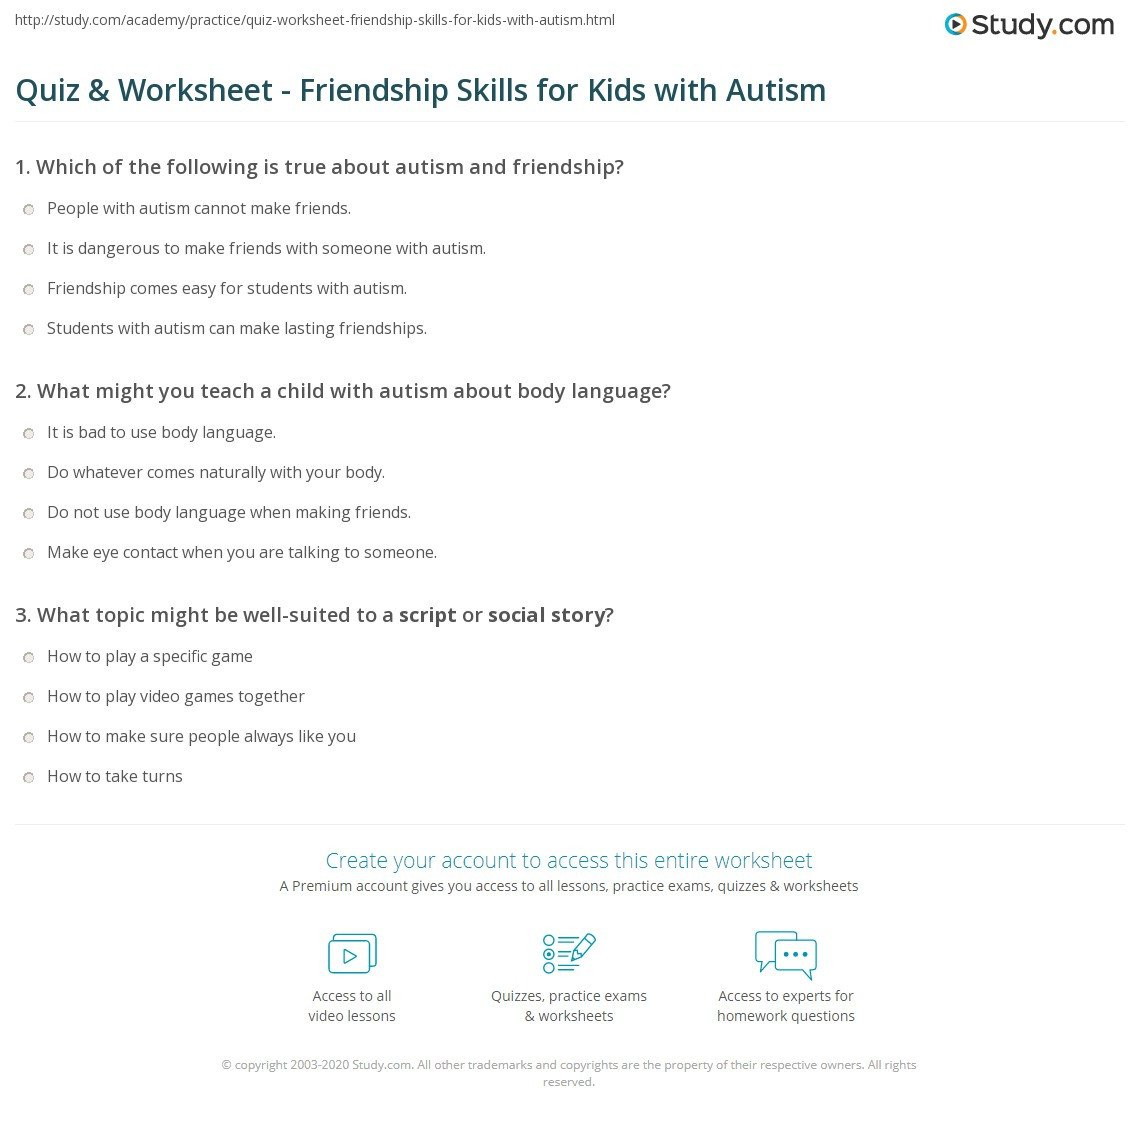 quiz worksheet friendship skills for kids with autism